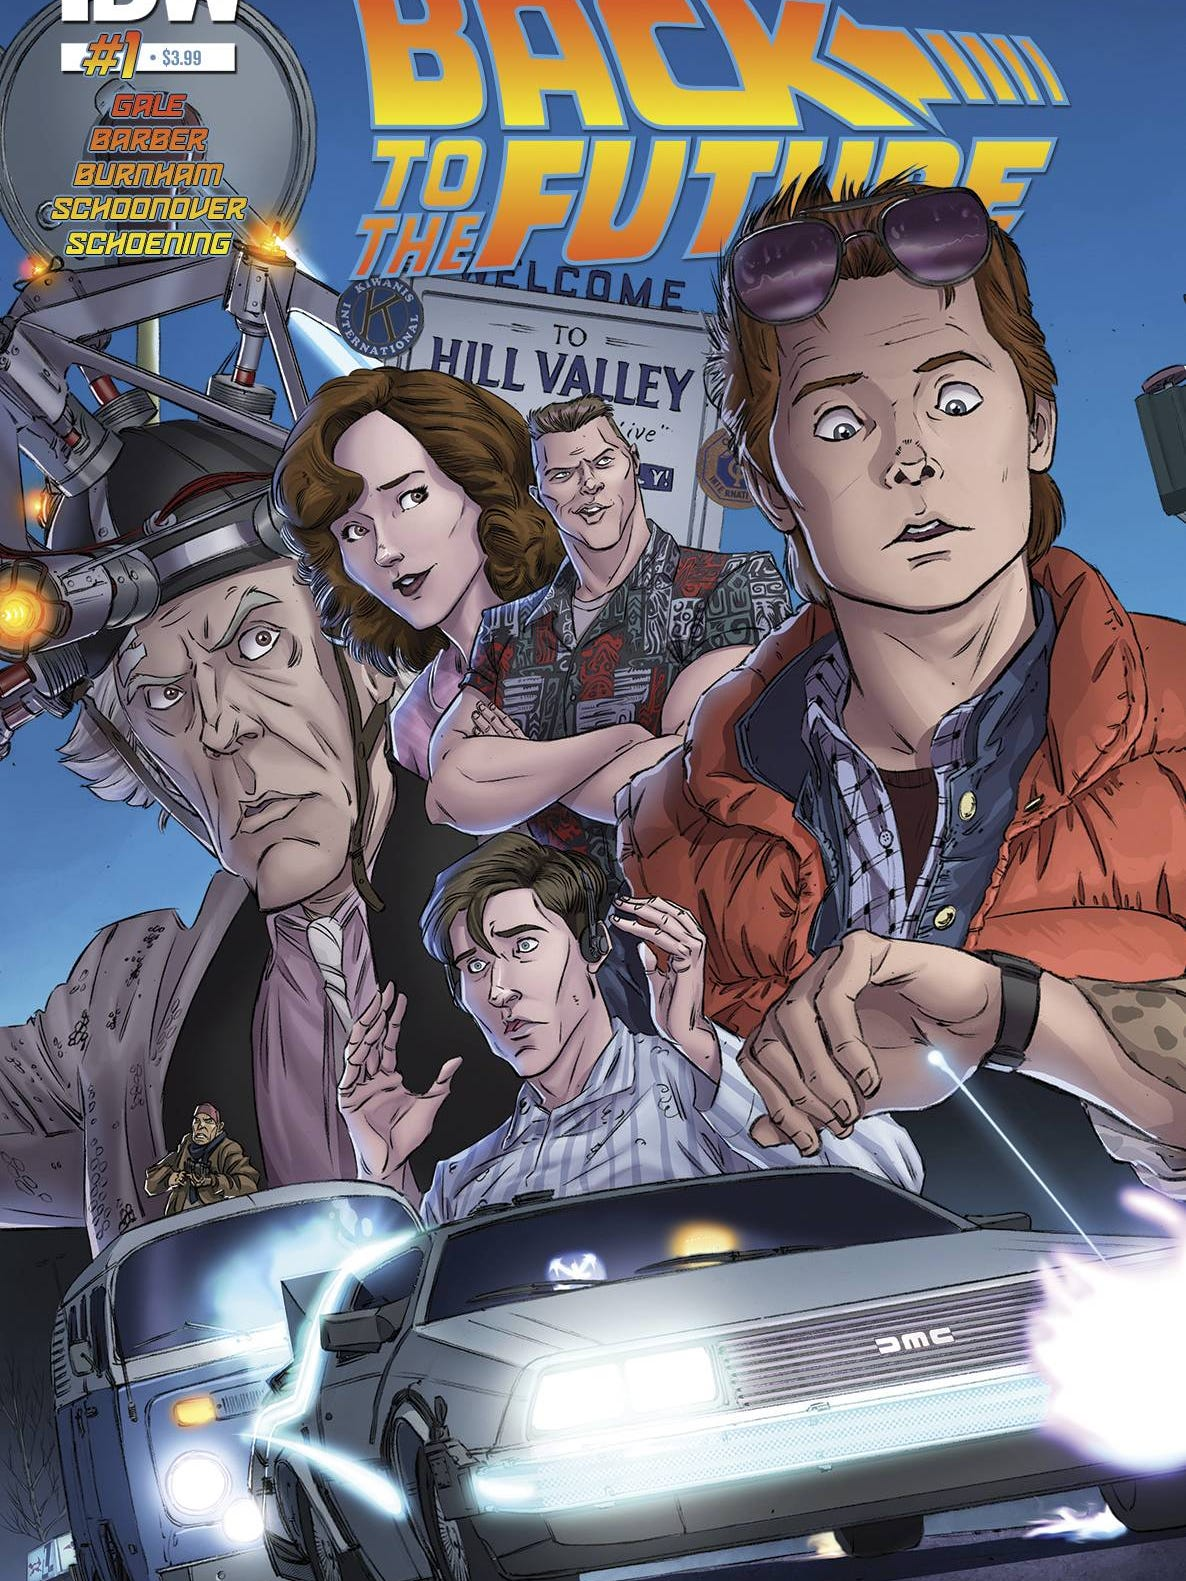 BACK TO THE FUTURE #20 FUNKO ART COVER IDW PUBLISHING